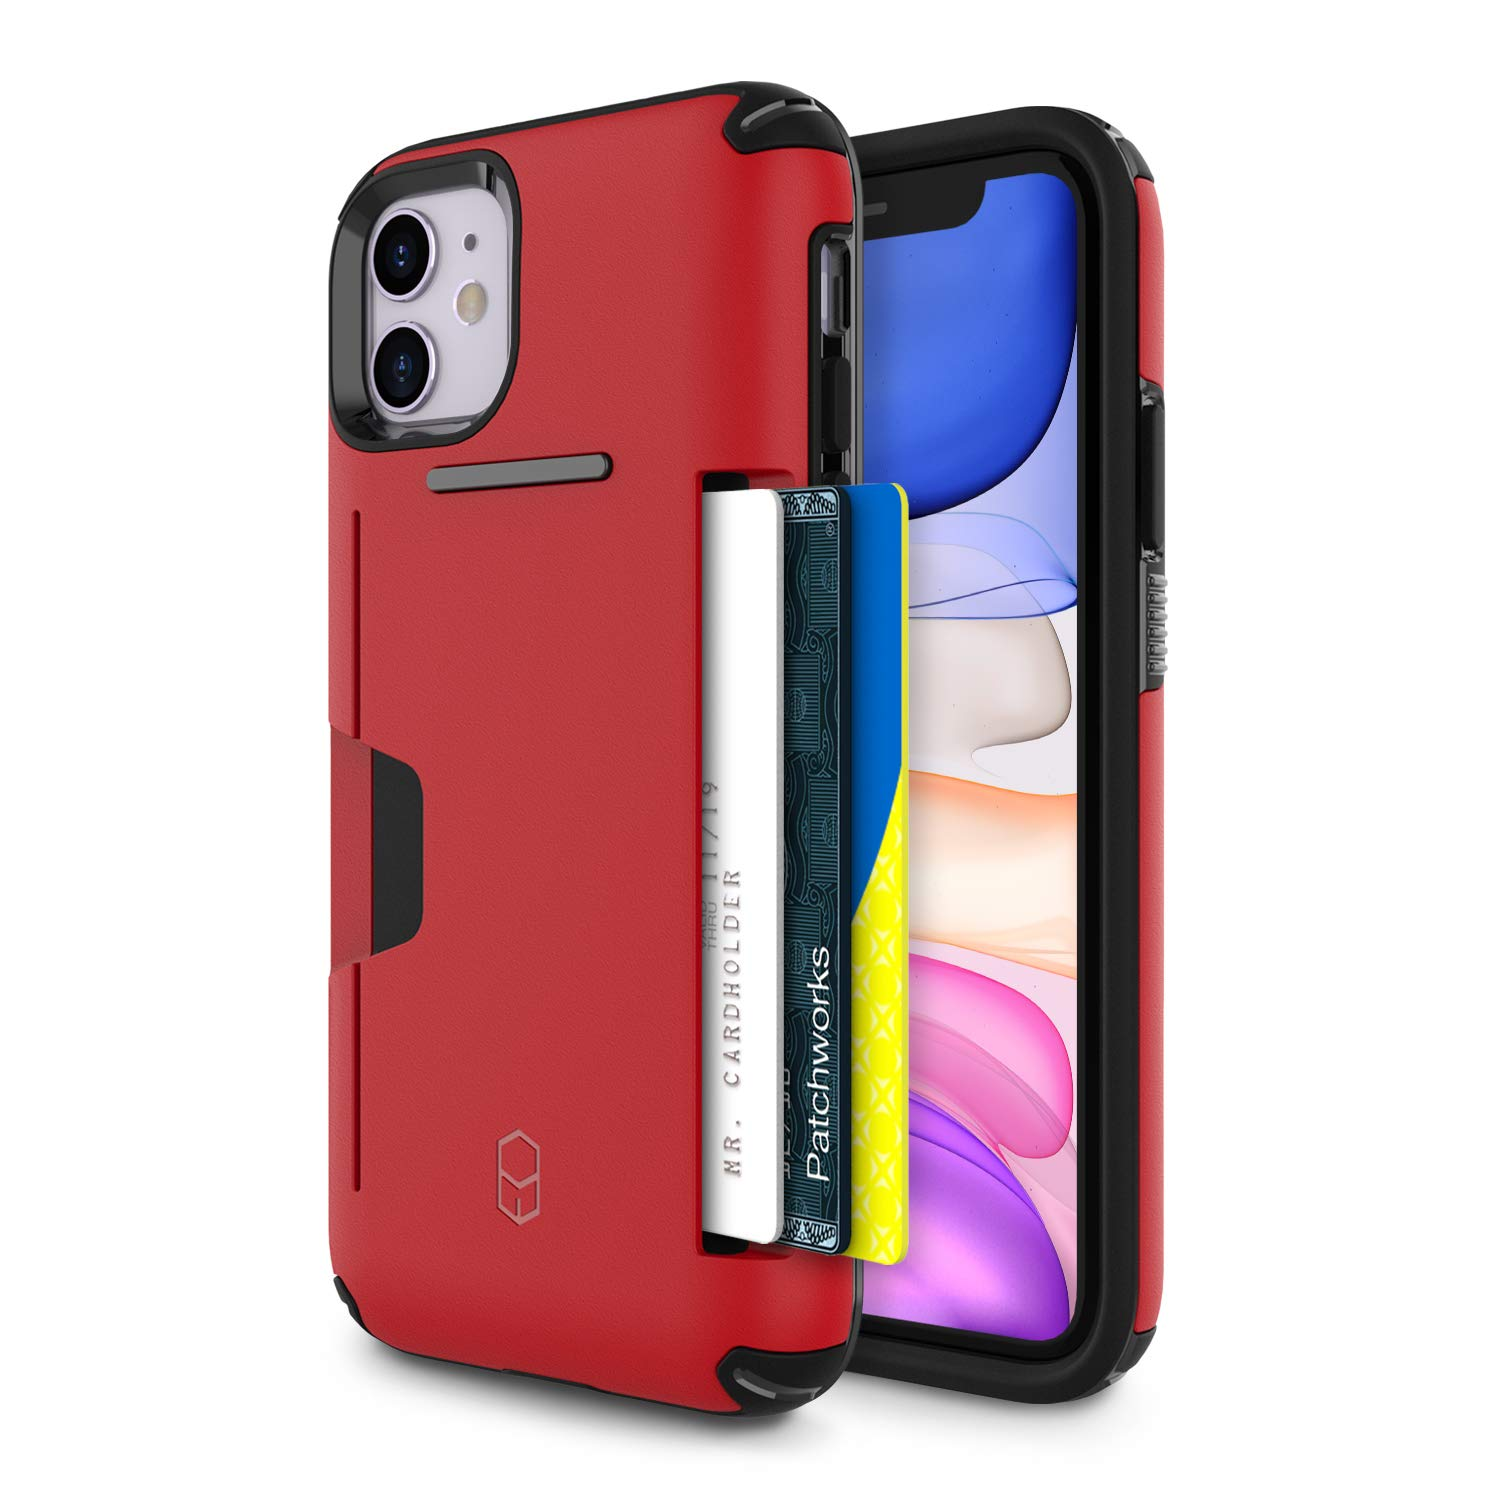 PATCHWORKS iPhone 11 Case [Level Wallet Series] Rugged Hybrid Shockproof Dual Layer TPU + PC Case [Military Grade Drop Test Certified] [Wireless Charging Compatible], Red